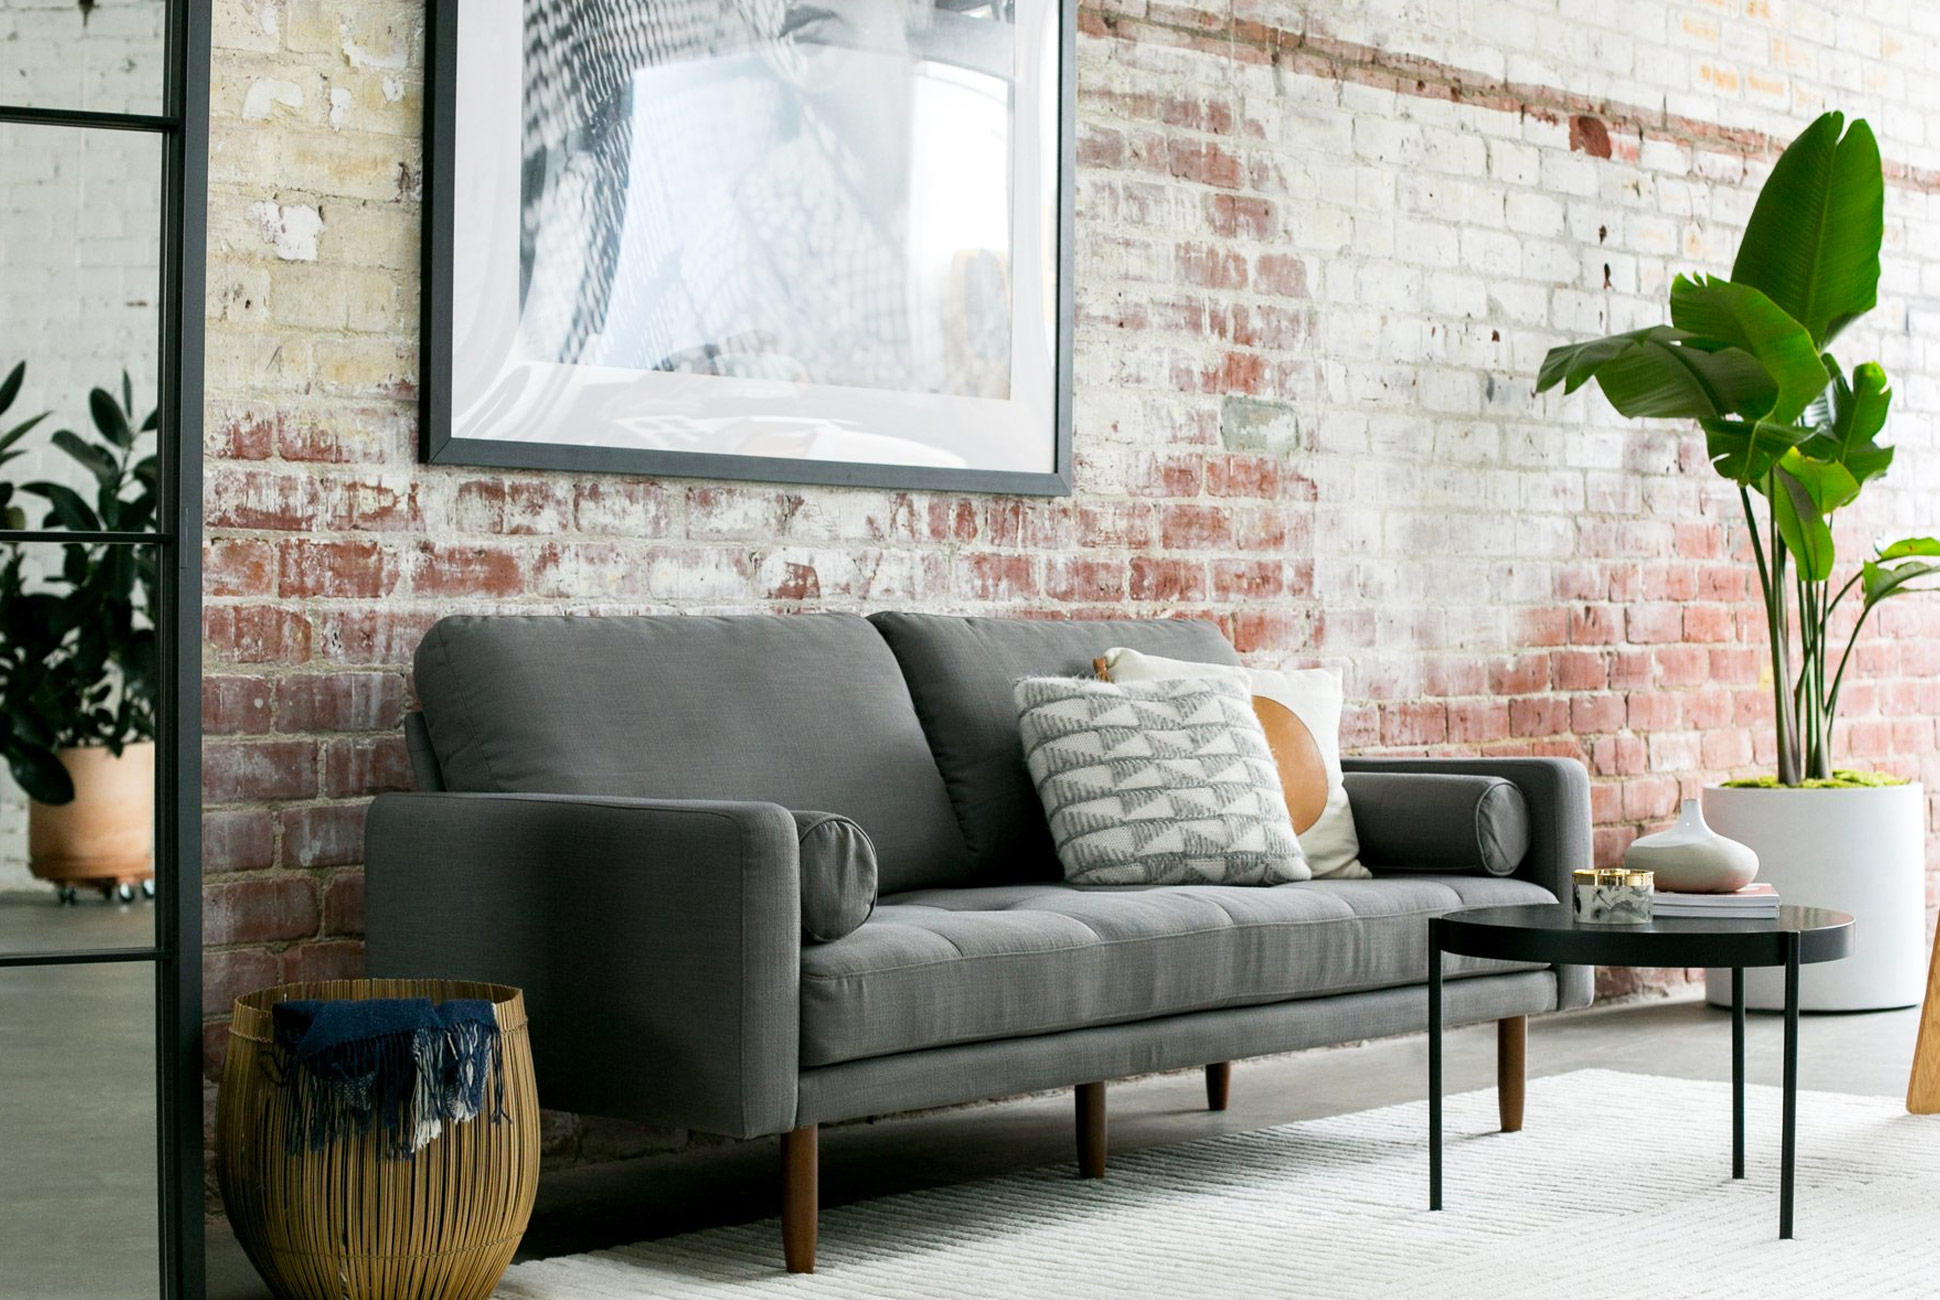 best sofas and couches you can gear patrol the for summer nap full lead ave six piece fabric chair accent table set skinny side quilt marble top corner placemats coasters palm